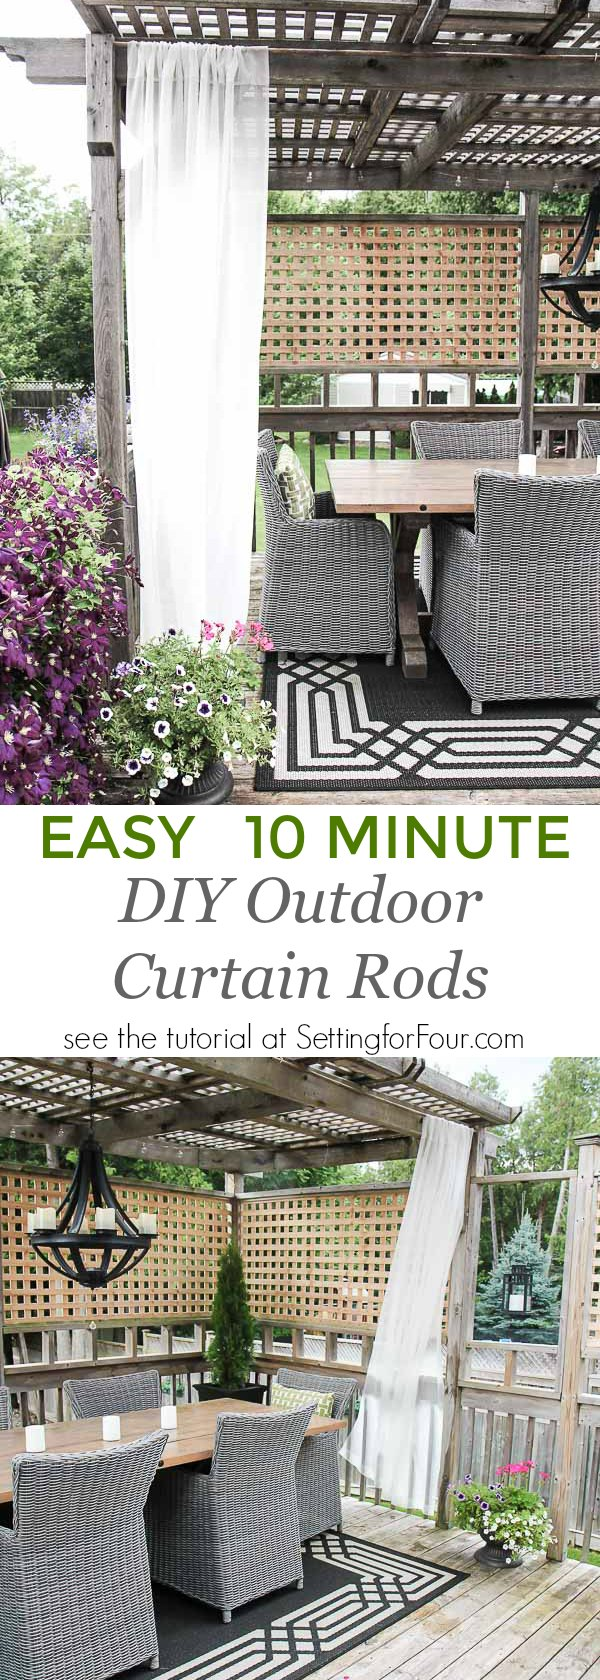 Learn How To Make And Hang These Easy Diy Outdoor Curtain Rods In Just 10 Minutes